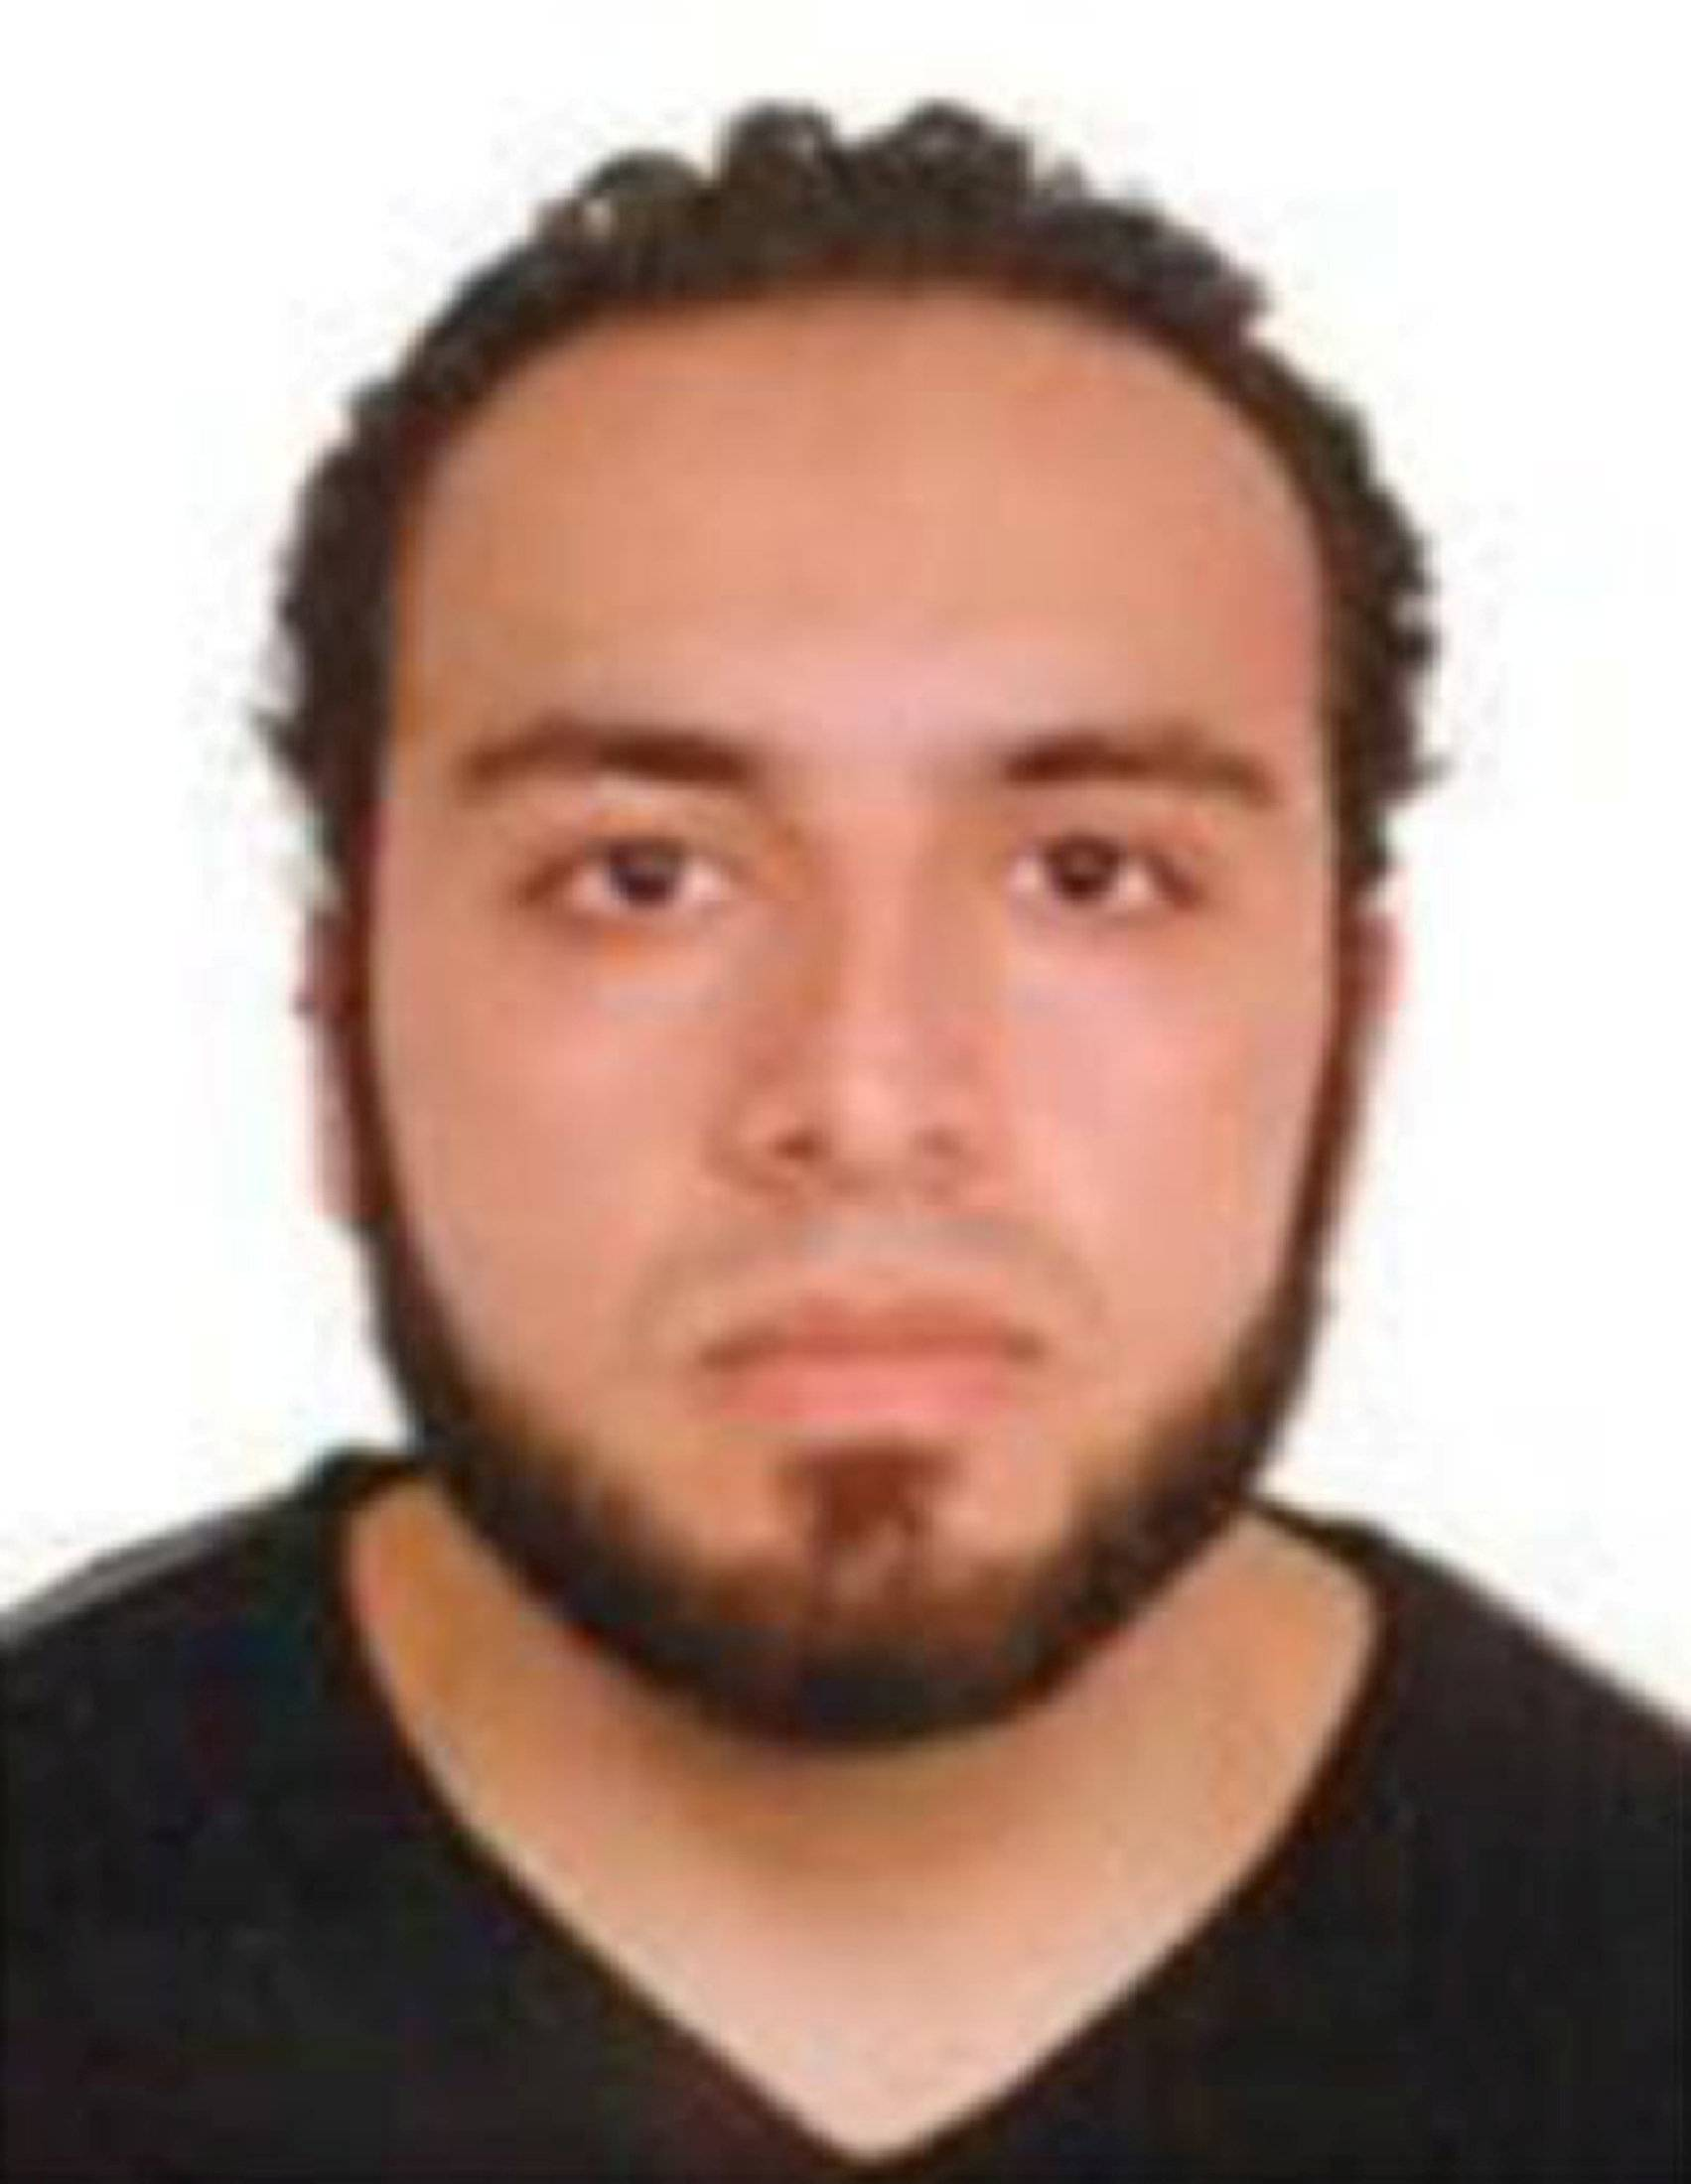 An image of Ahmad Khan Rahami, who is wanted for questioning in connection with an explosion in New York City, is seen in a a poster released by the Federal Bureau of Investigation